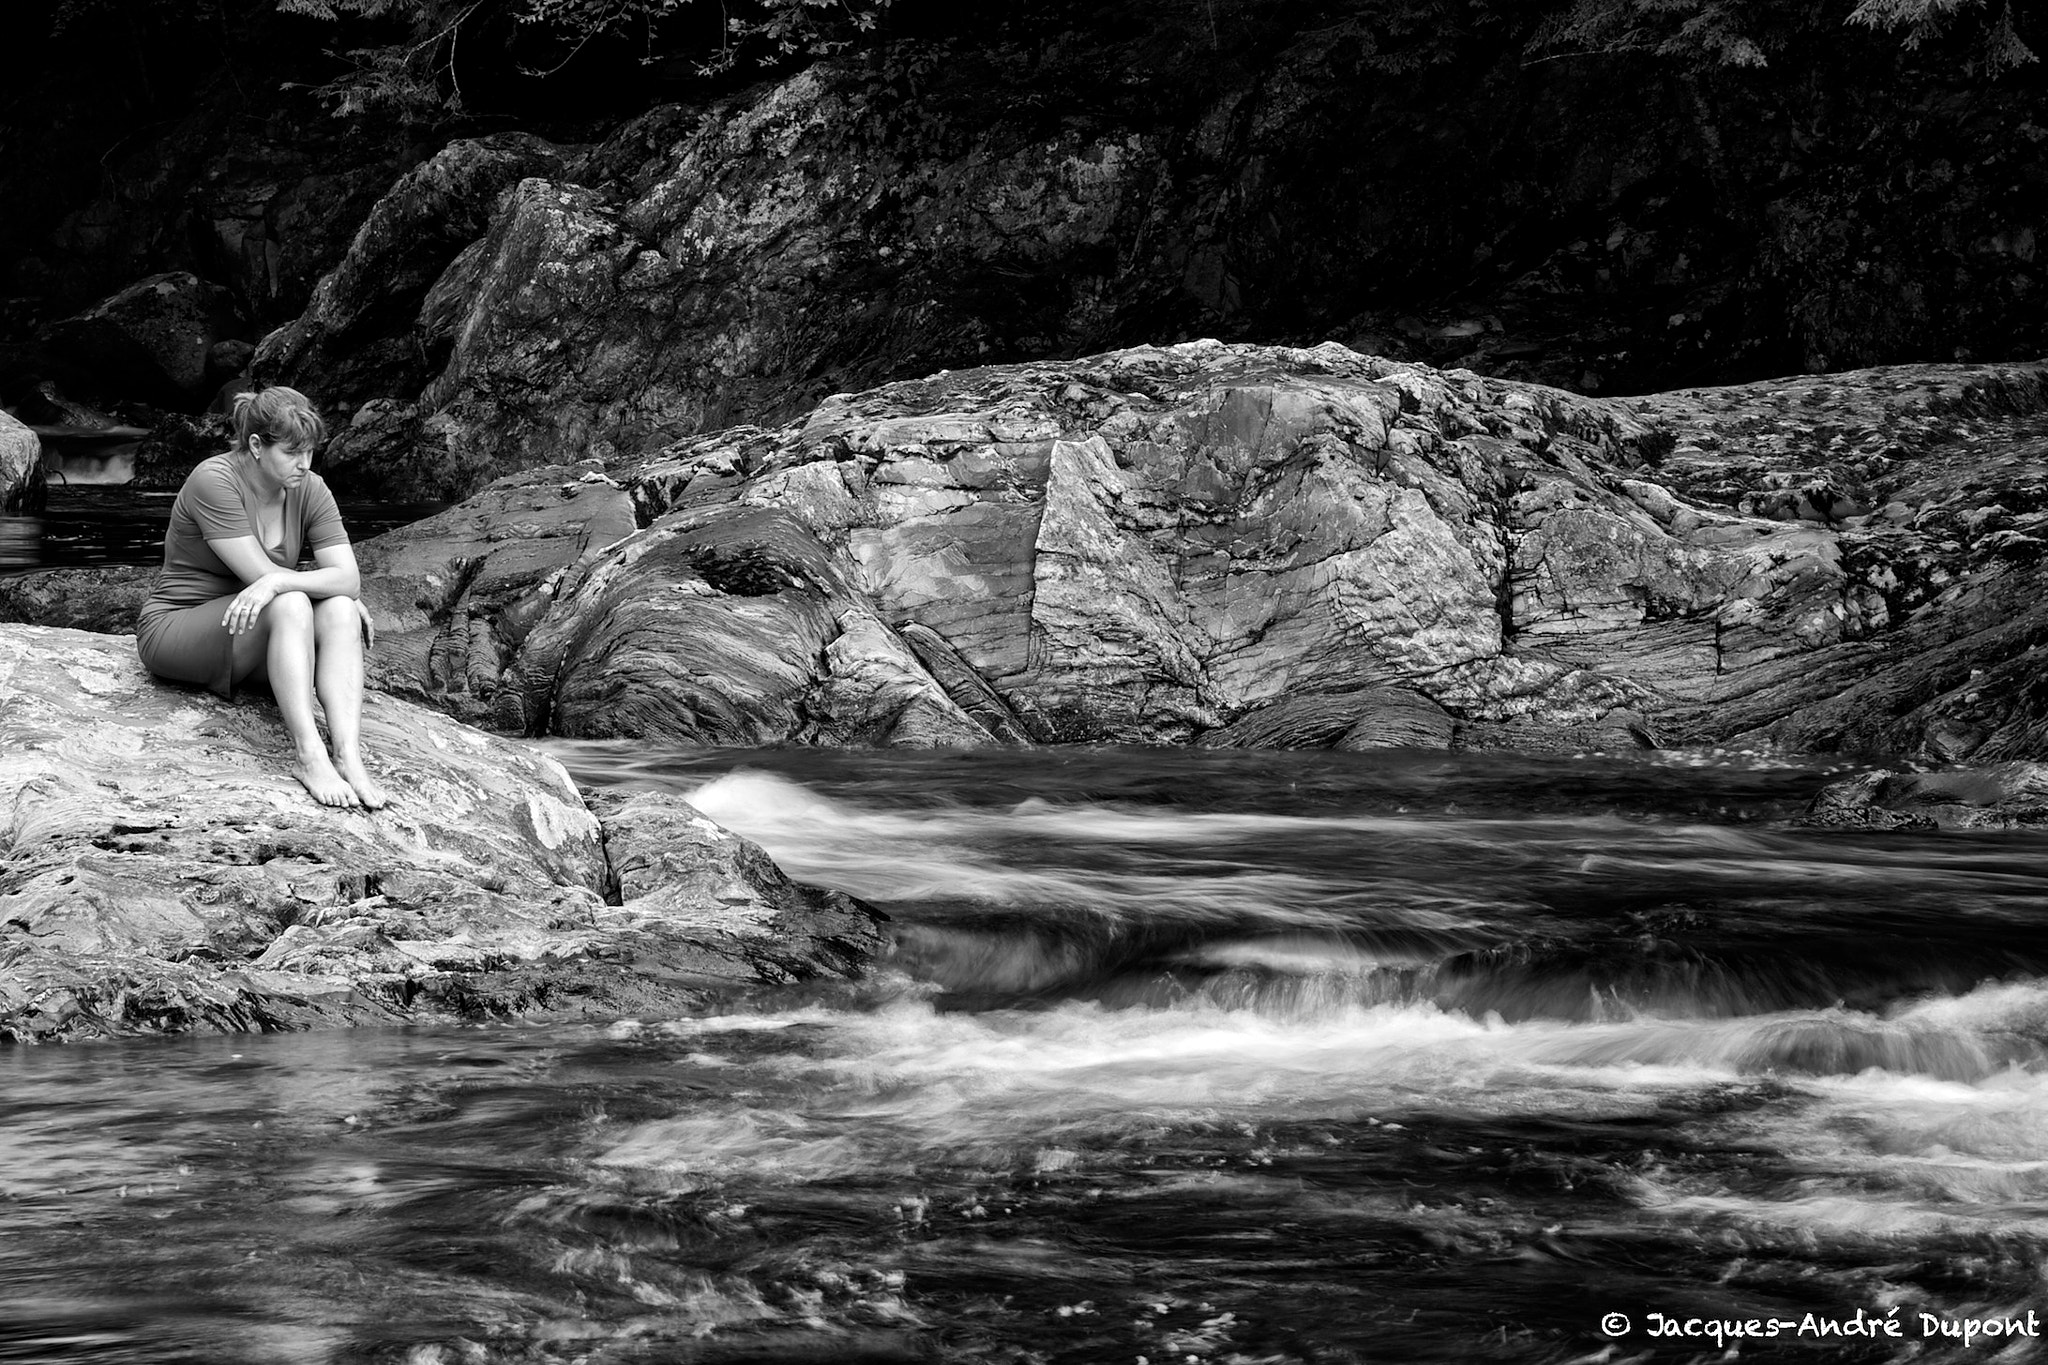 Photograph The stream by Jacques-Andre Dupont on 500px